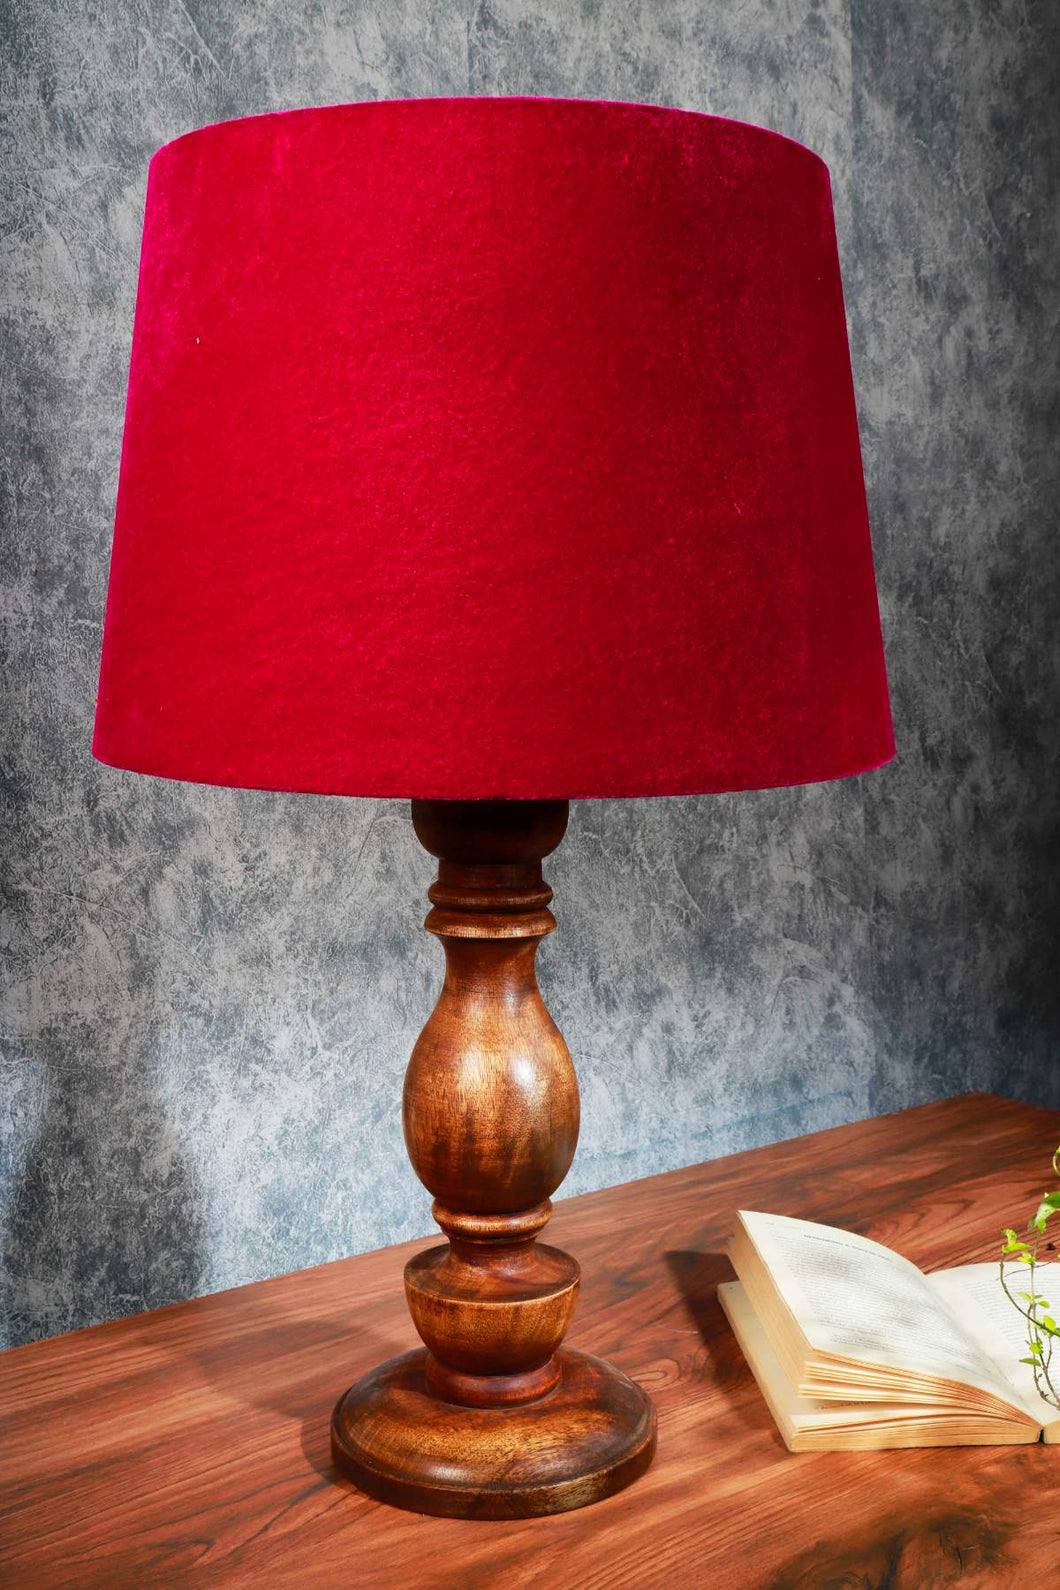 Shady Brown Table Lamp with Frustum Pink Velvet Lampshade